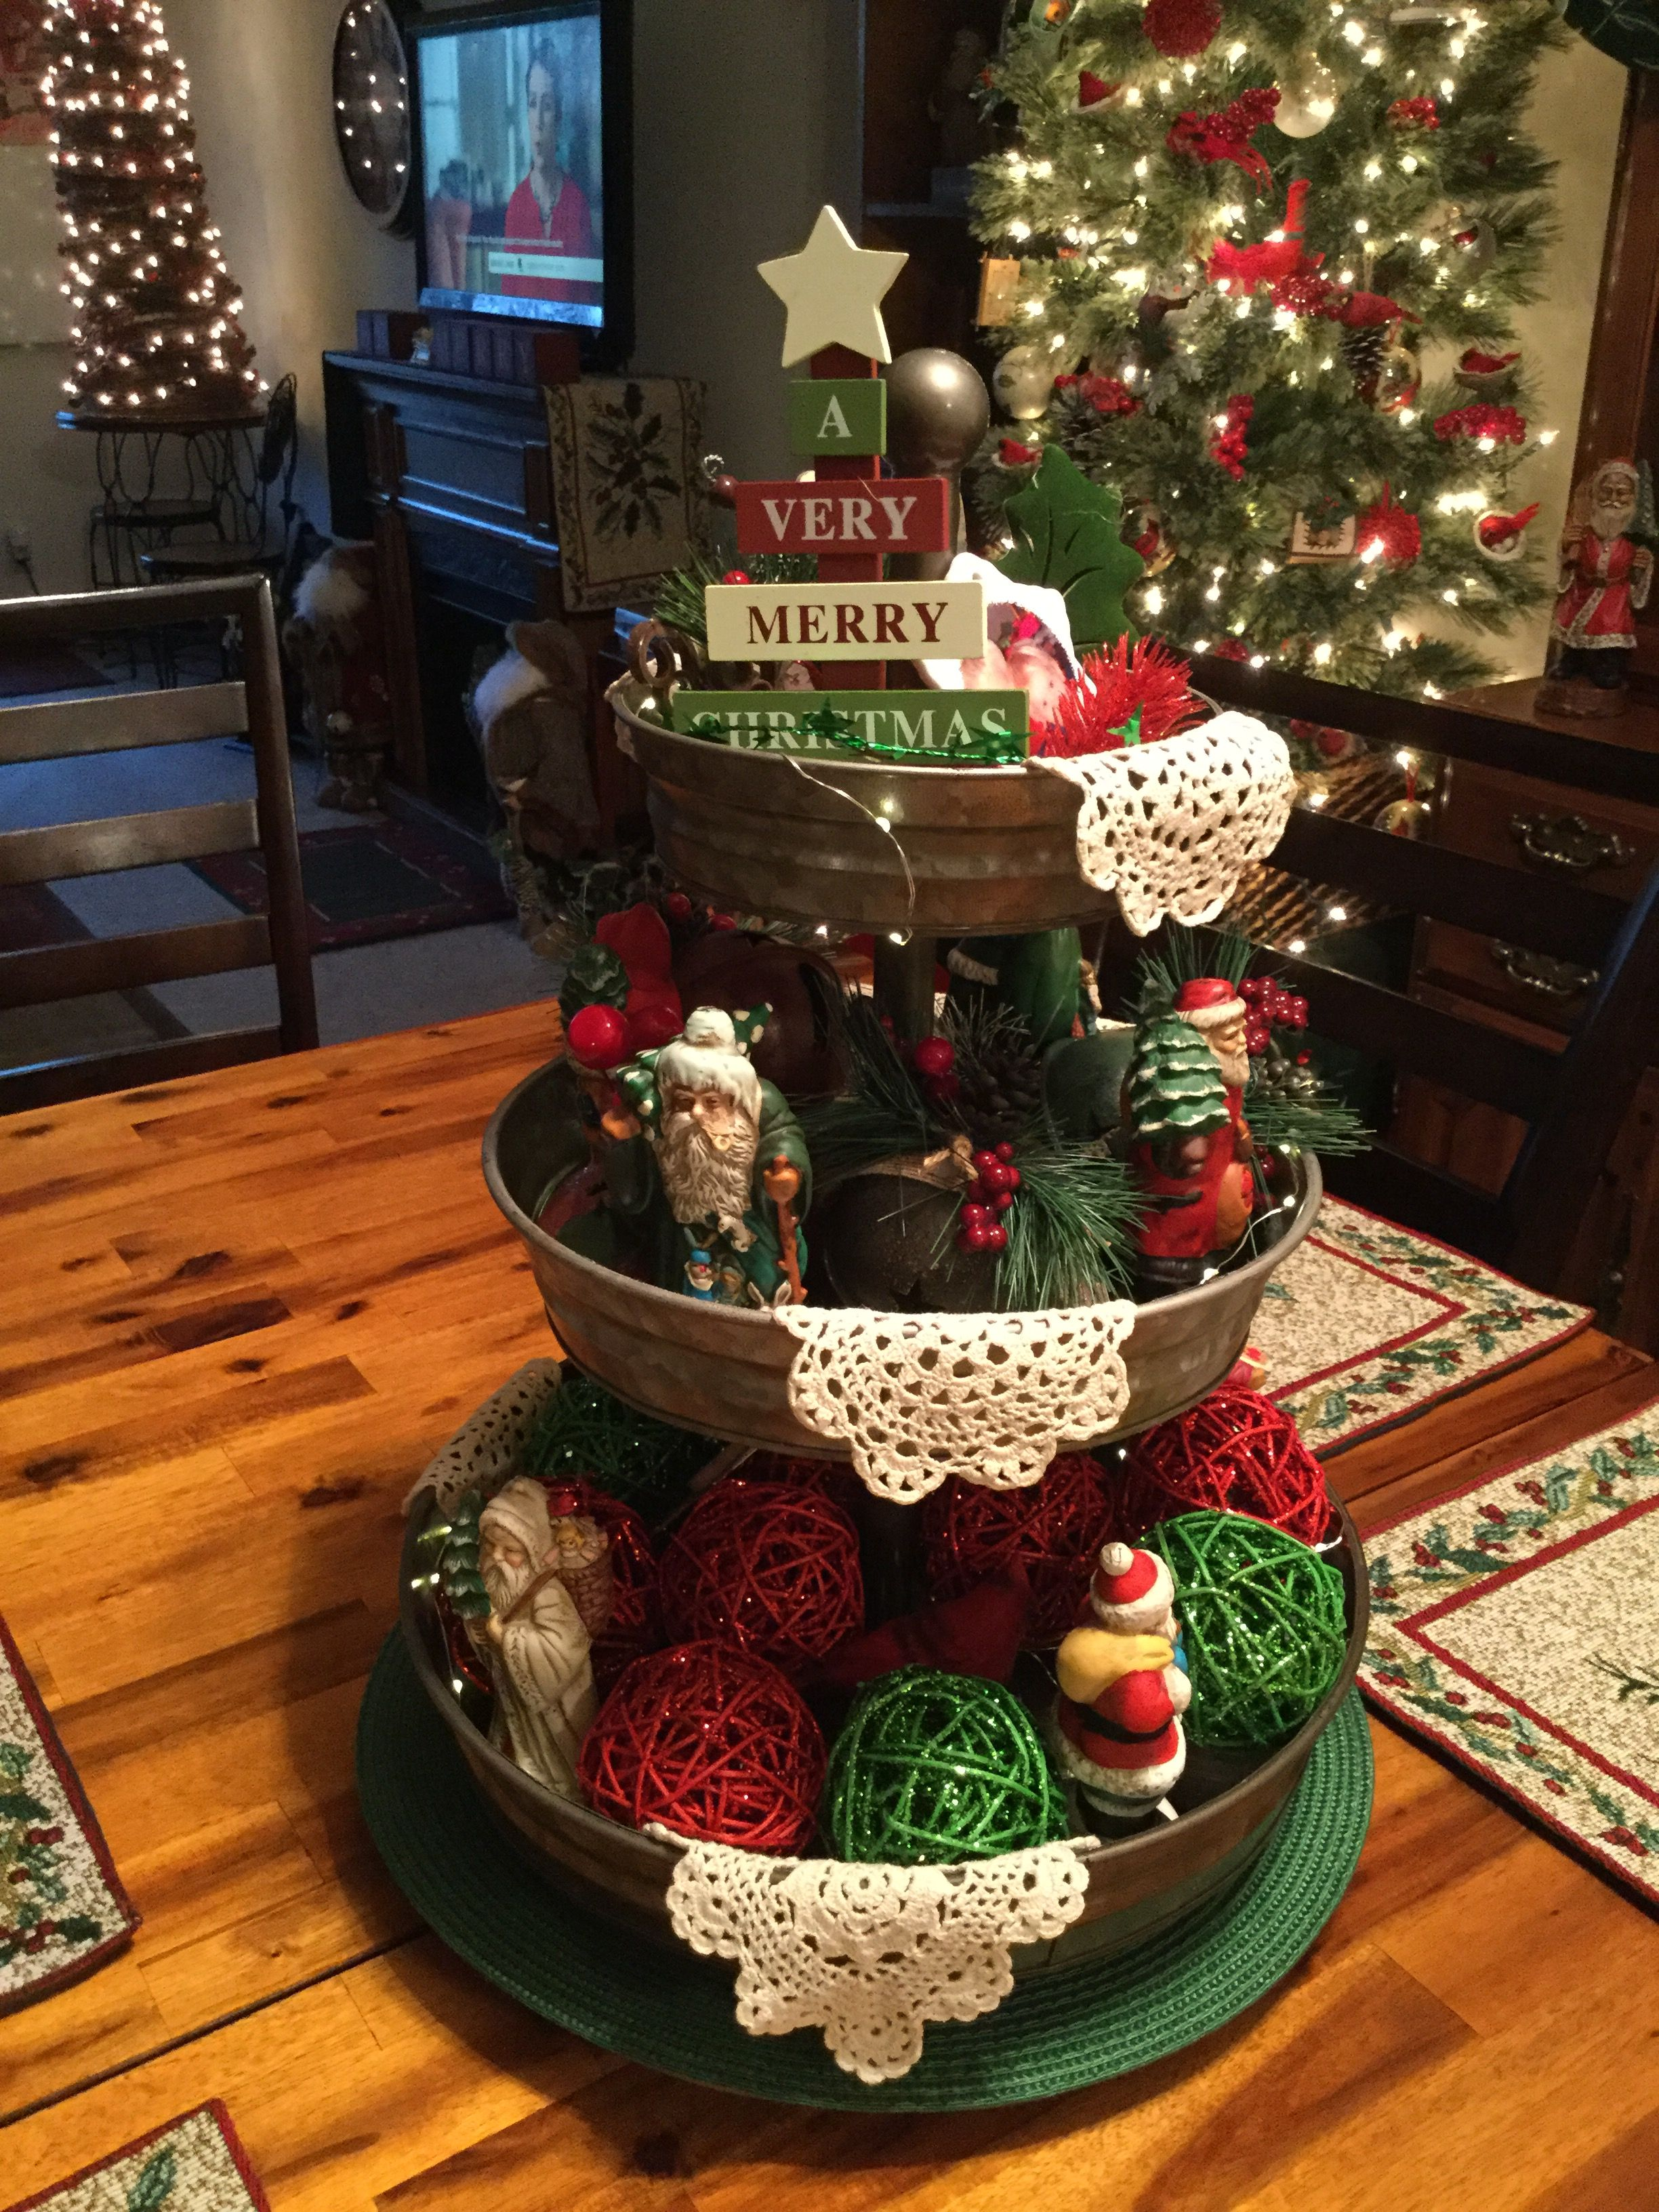 Pin By Liza Cordero On Decorating 3 Tiered Trays Tray Decor Christmas Christmas Decorations Rustic Christmas Centerpieces